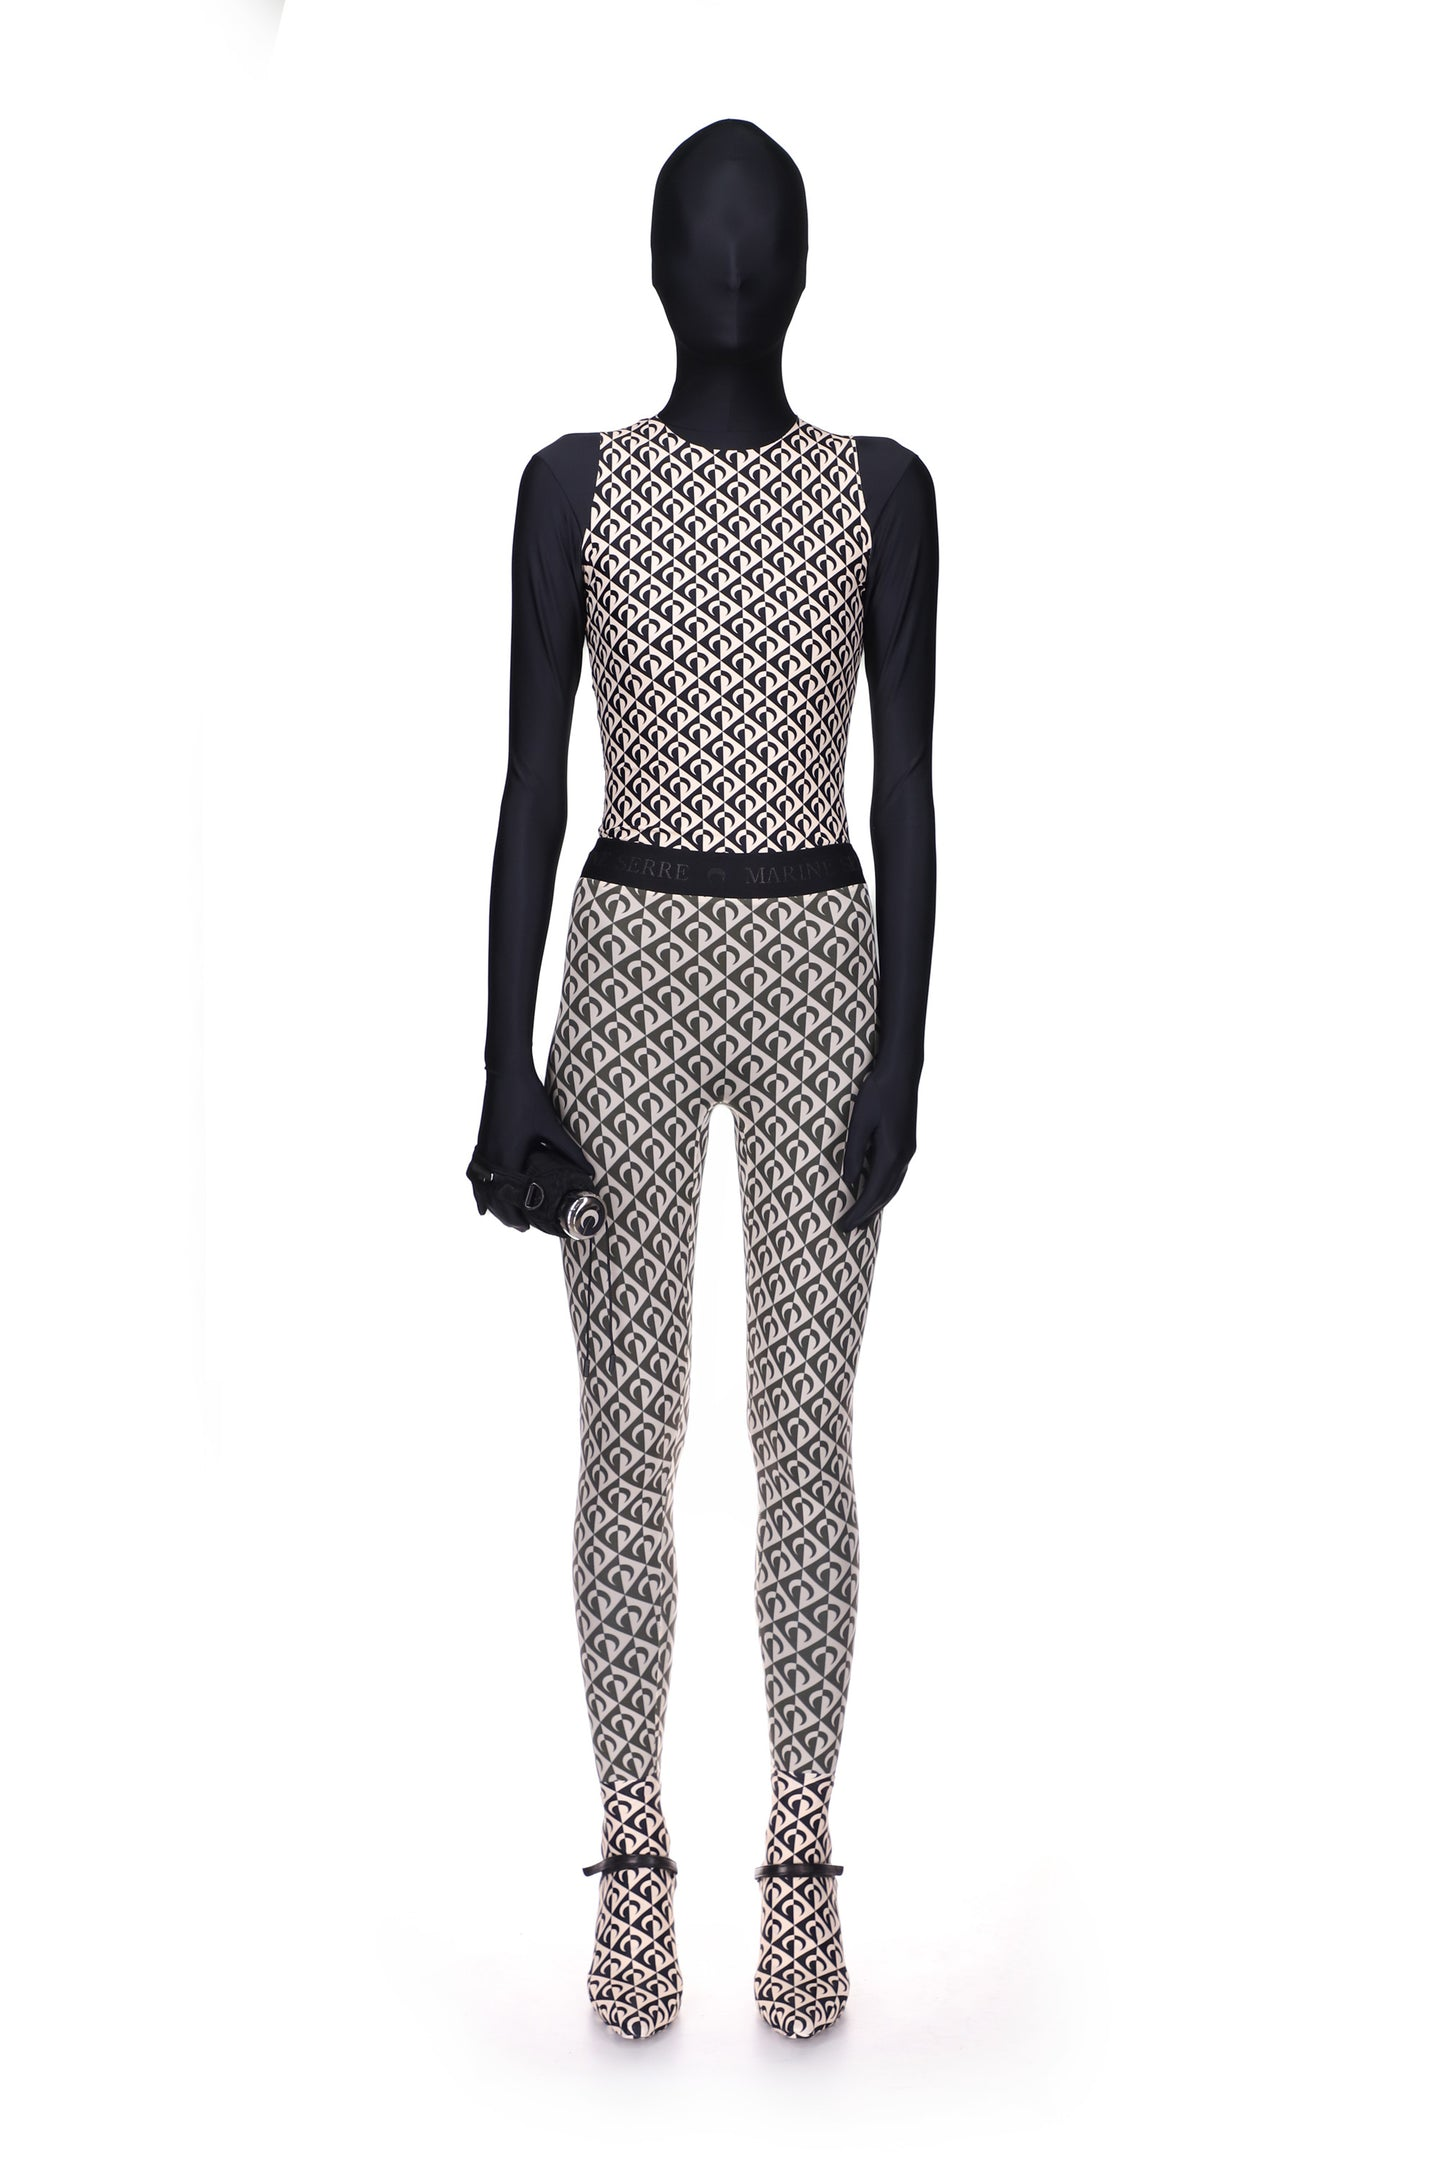 Moon Lozenge Fuseaux Leggings